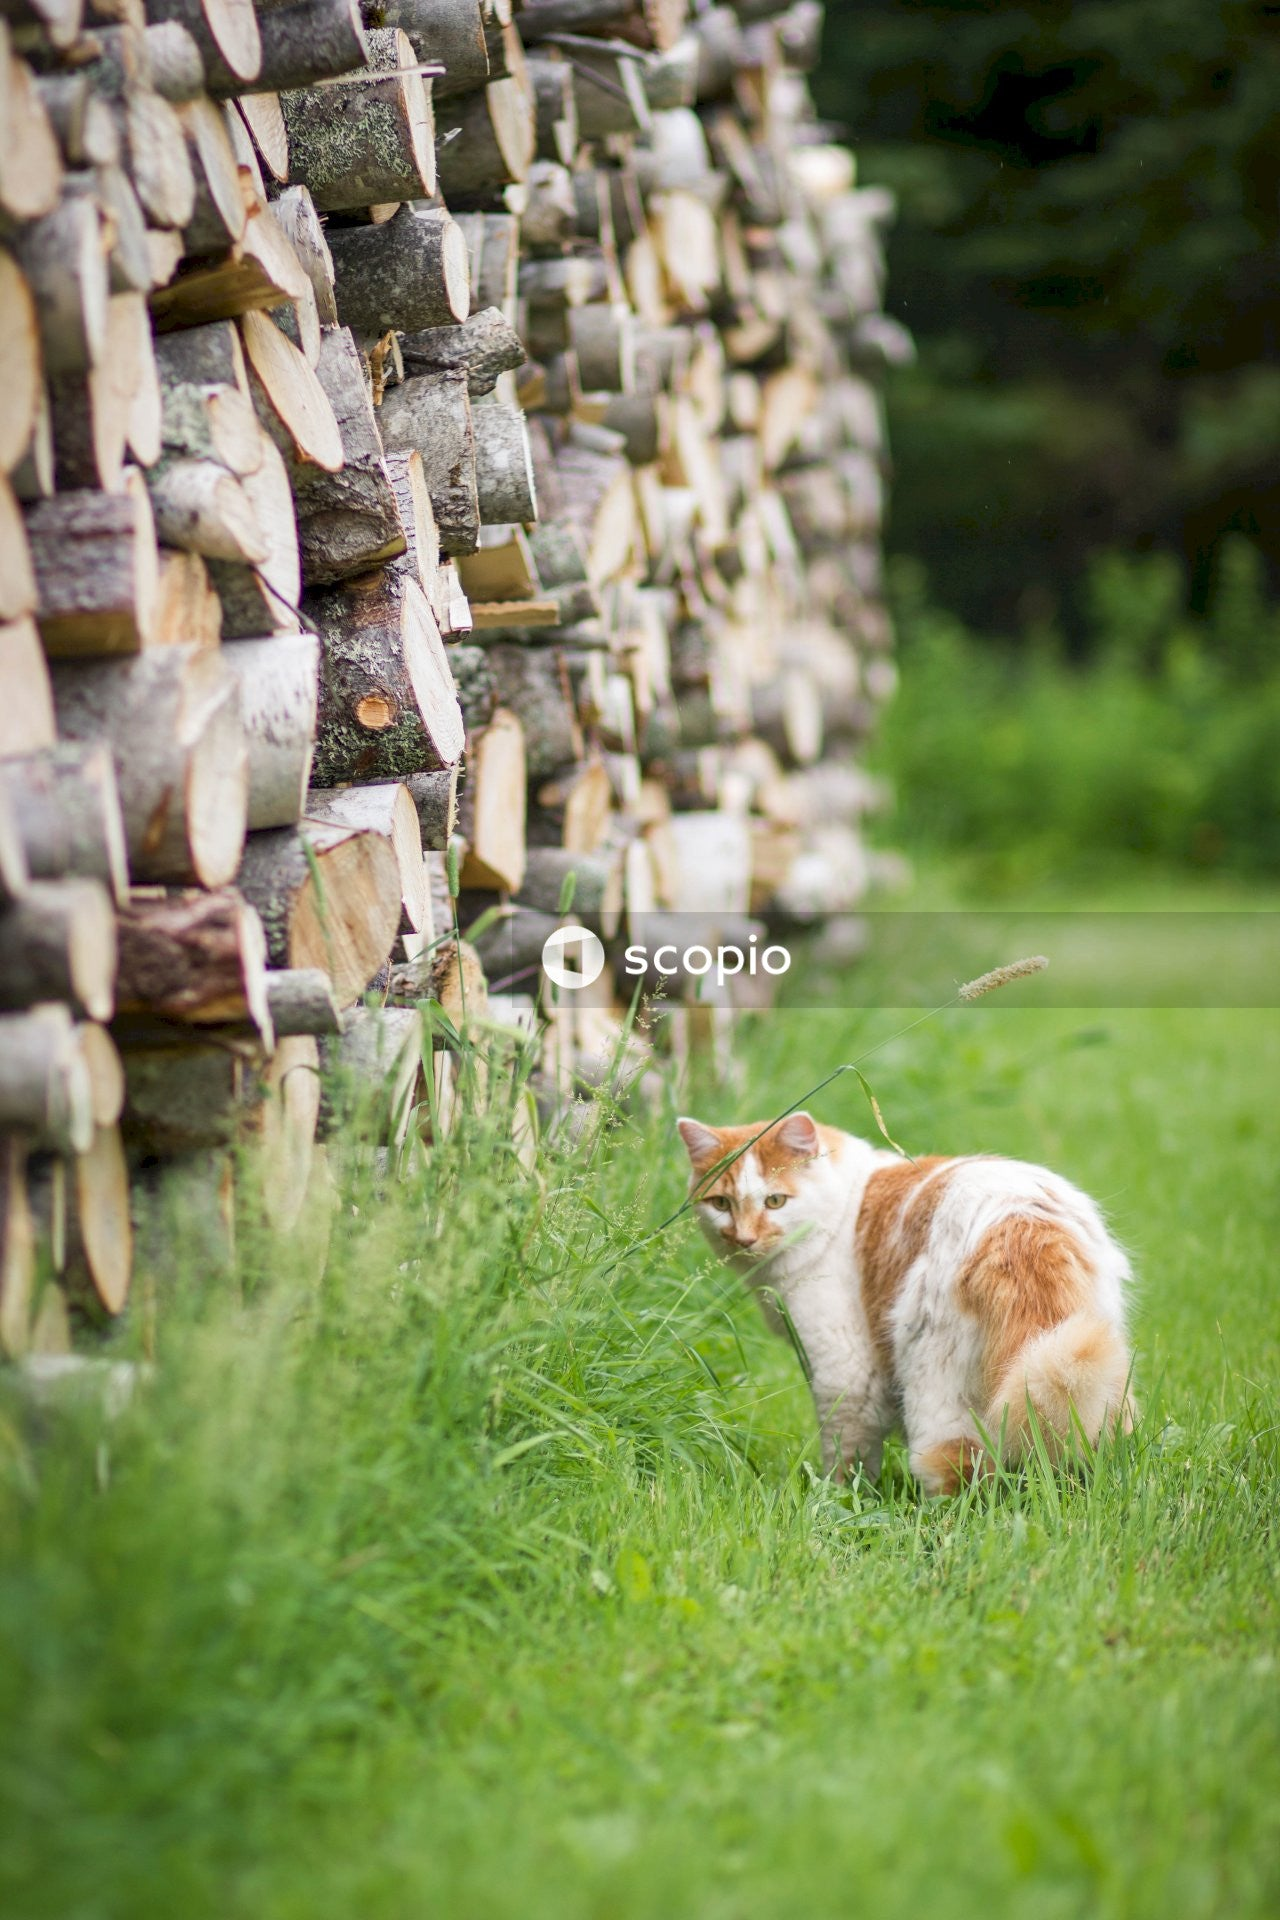 Shallow focus photo of white and orange cat